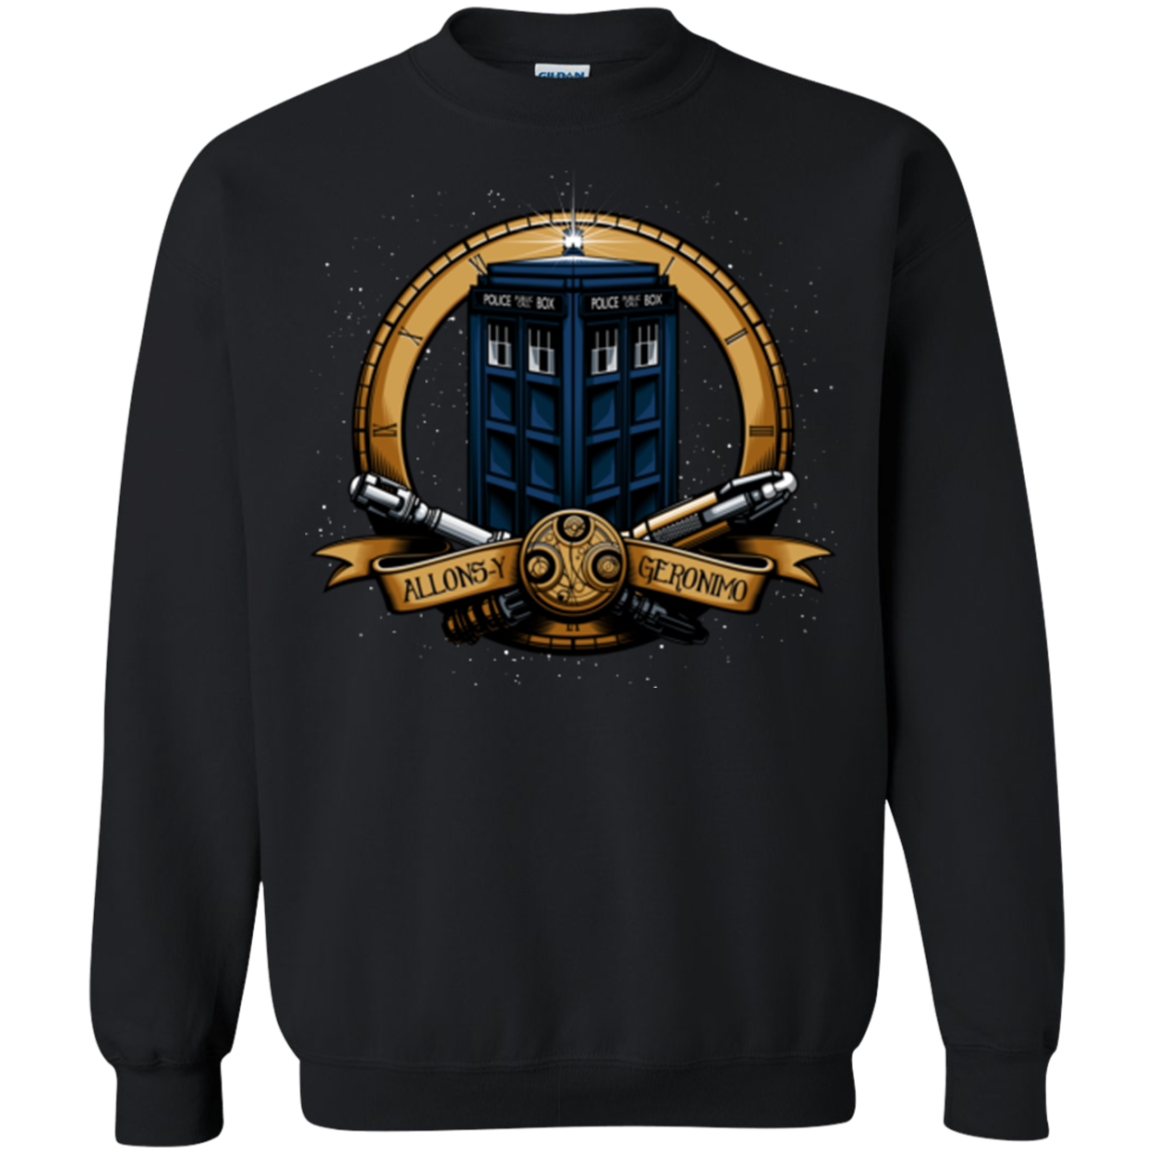 The Day of the Doctor Crewneck Sweatshirt